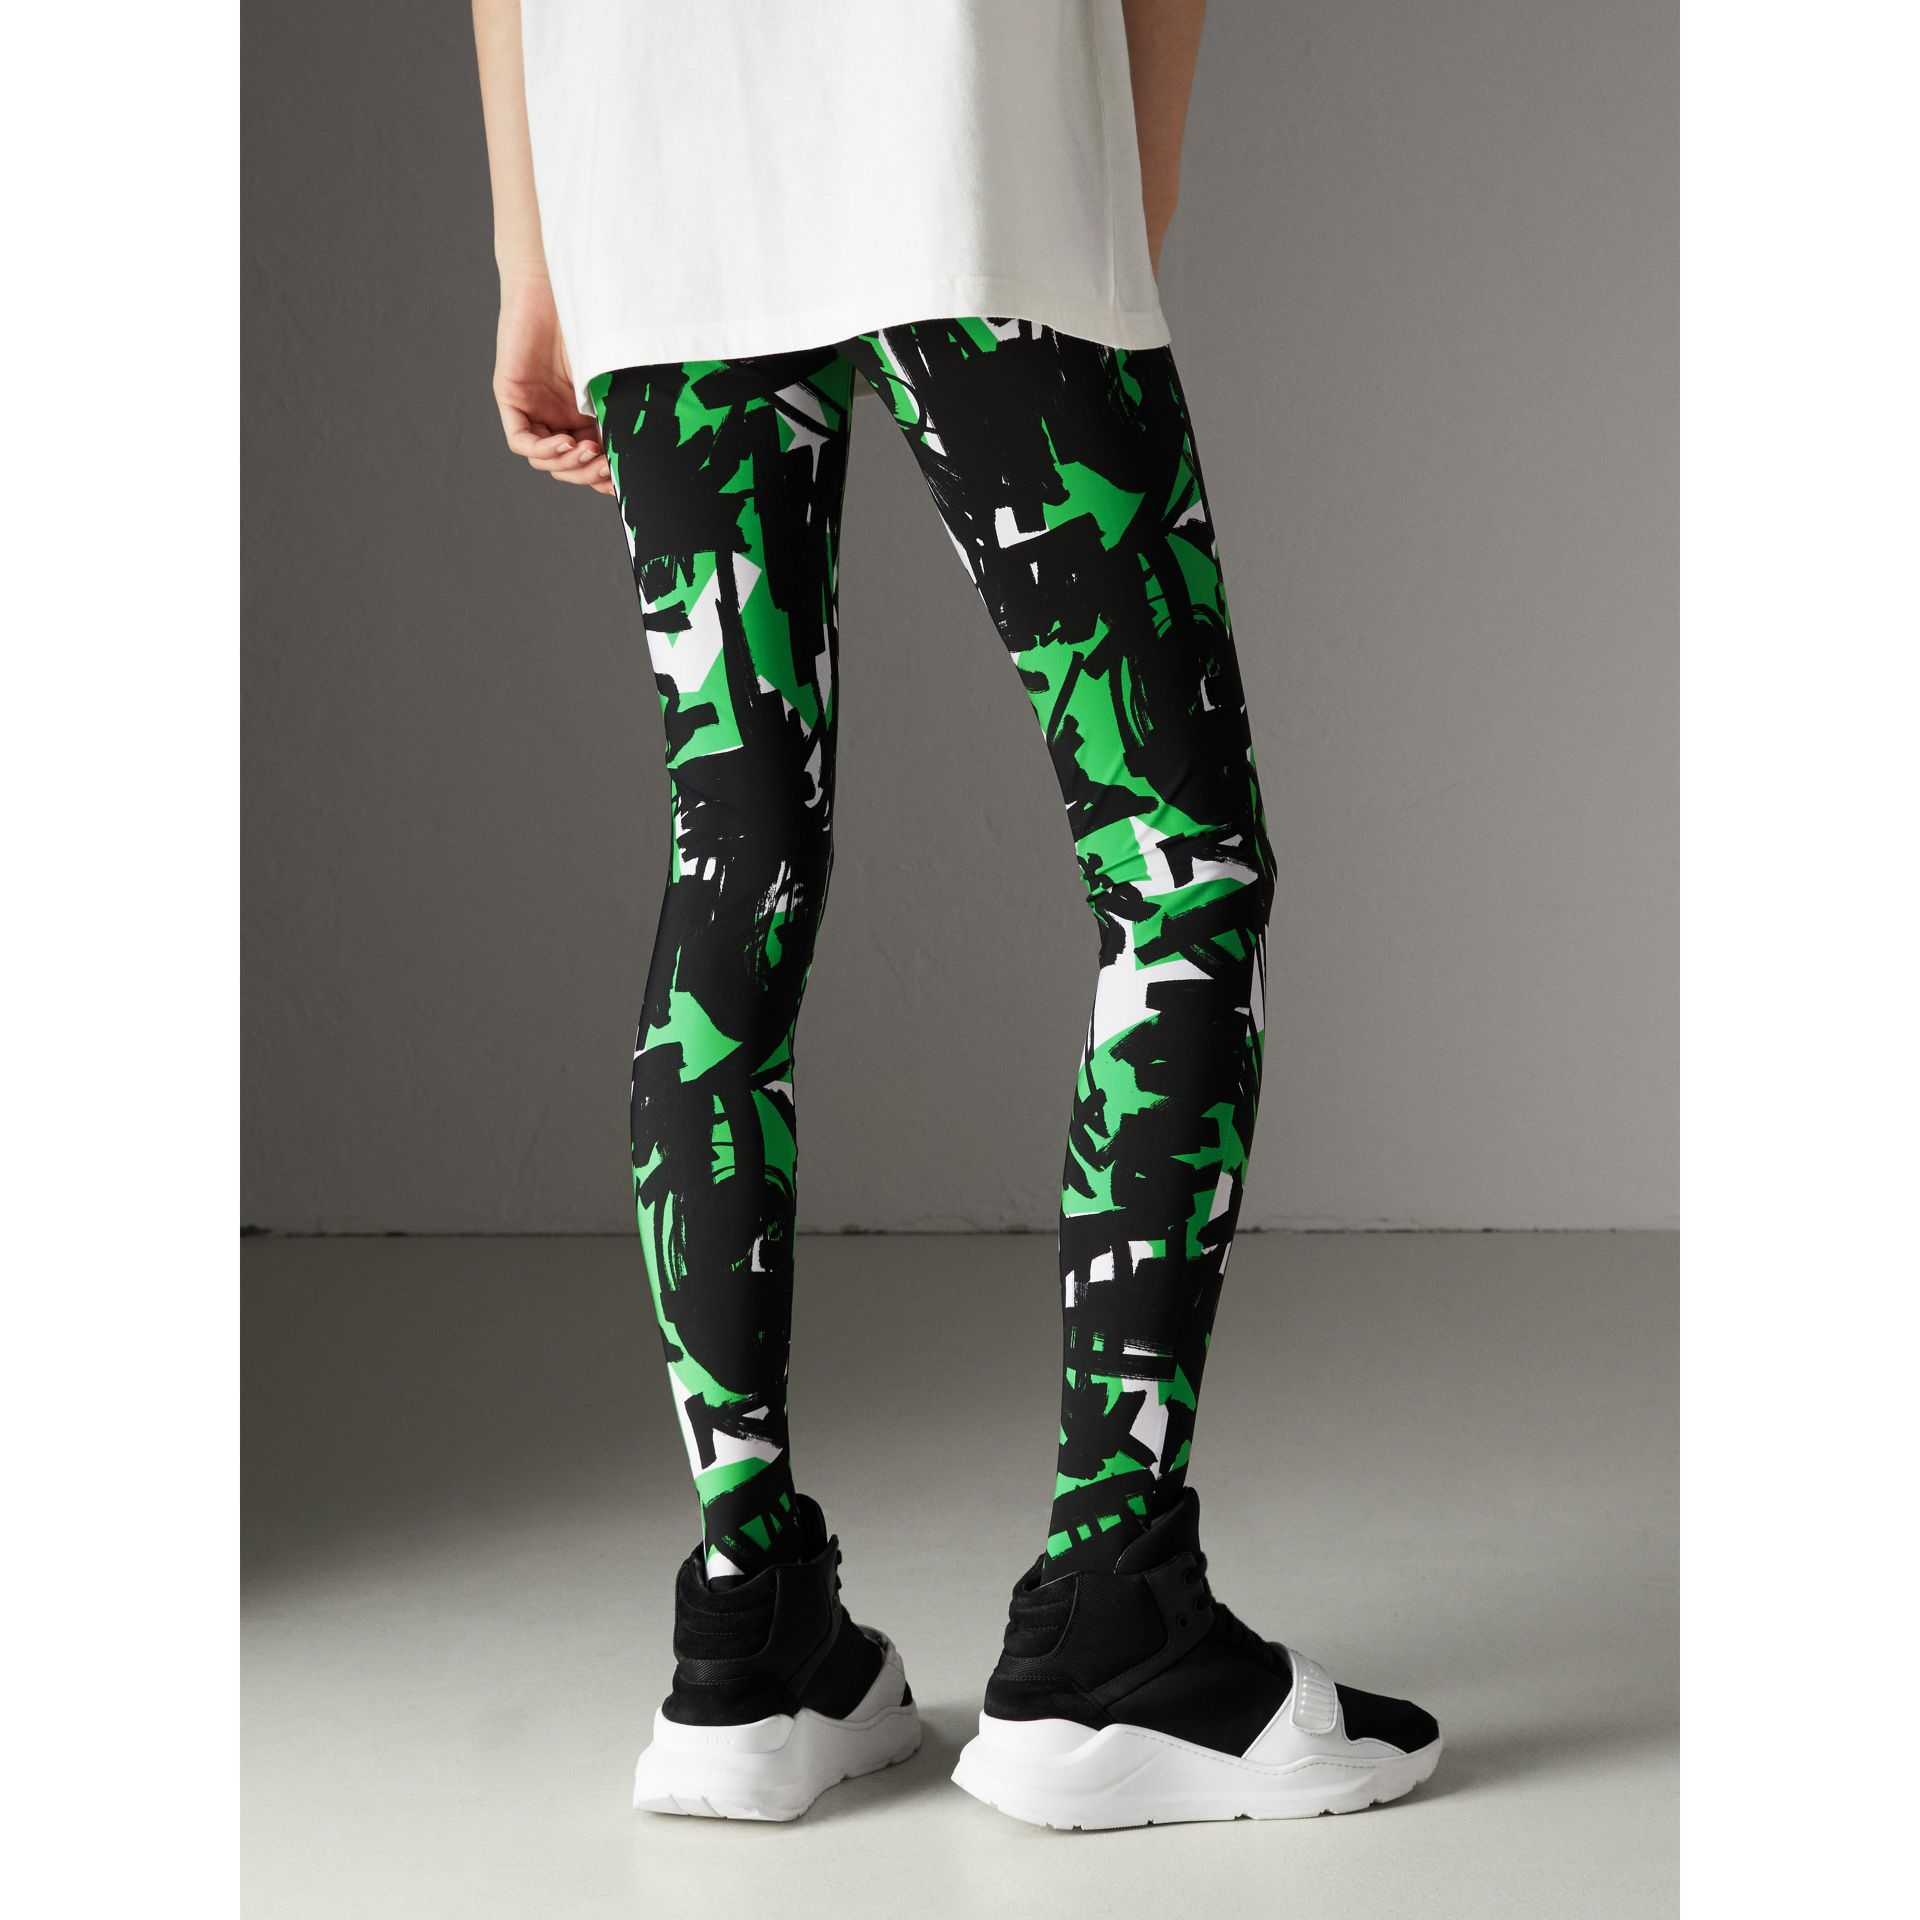 Legging à imprimé graffiti (Vert Néon) - Femme | Burberry - photo de la galerie 2